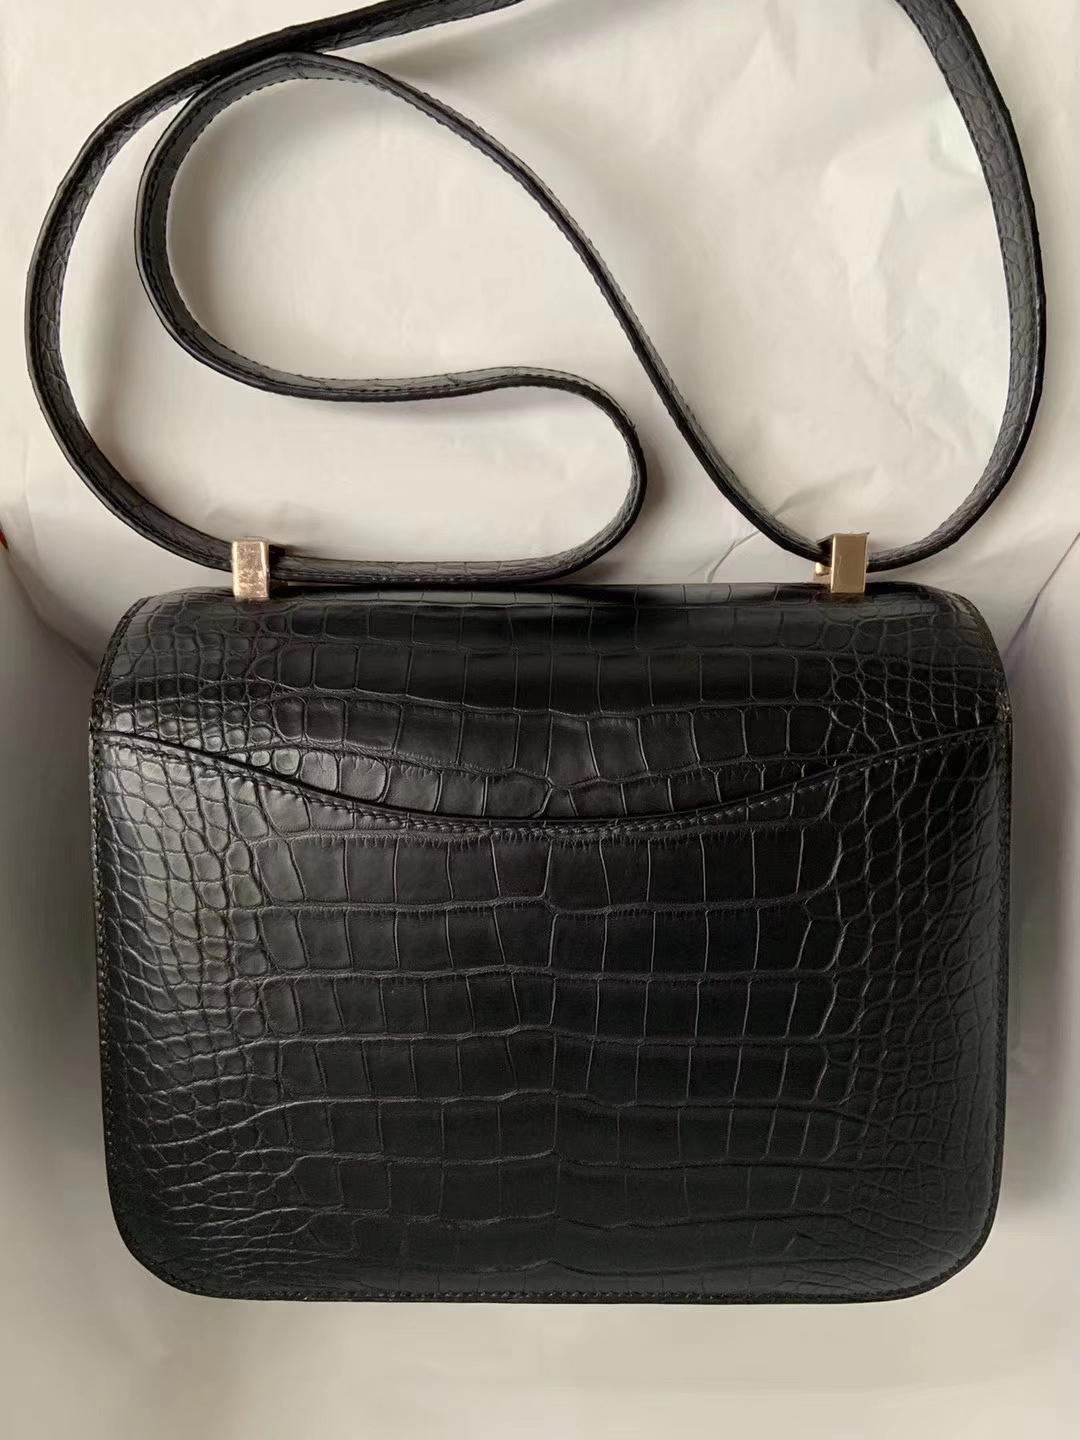 Customize Hermes Matt Crocodile Constance23CM Bag CK89 Noir Rose Gold Hardware